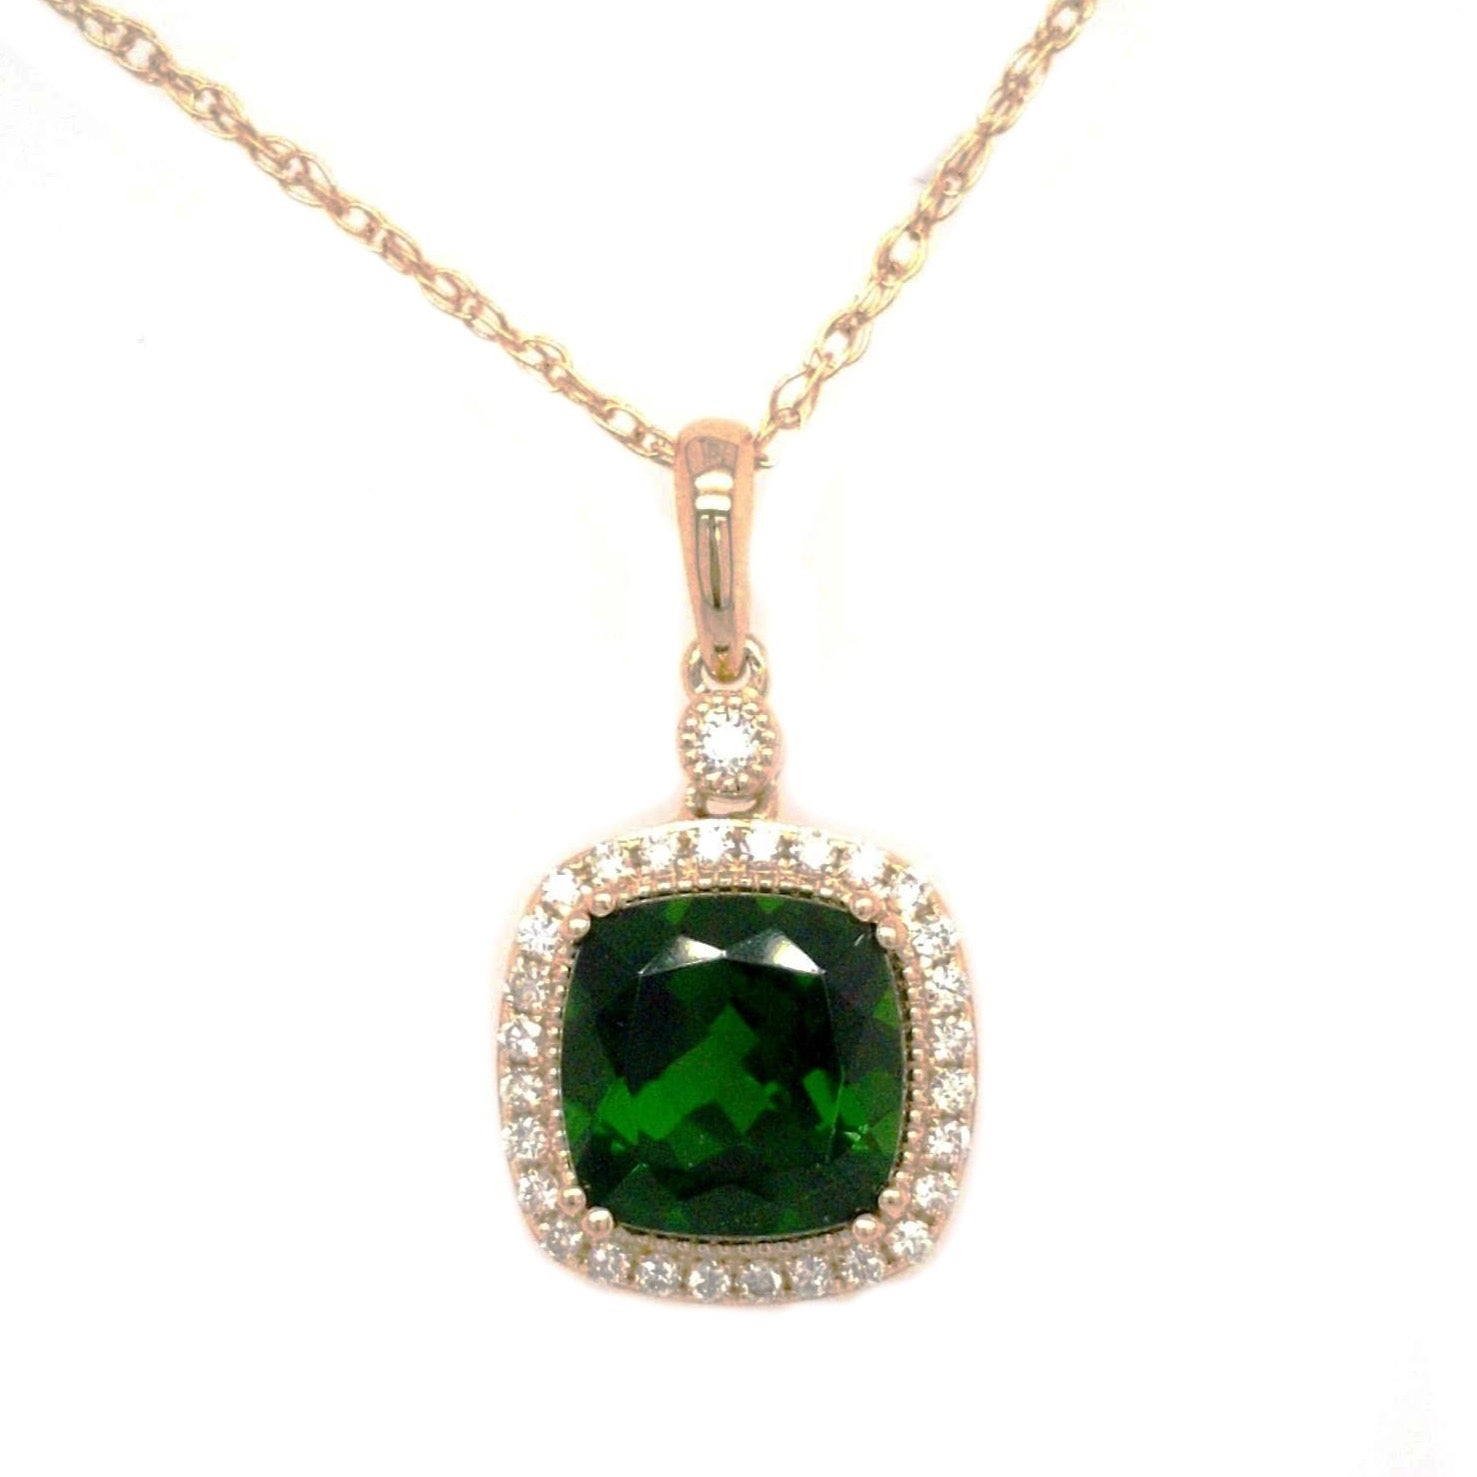 Alaina -  2.15 ct Chrome Diopside and Diamond Necklace